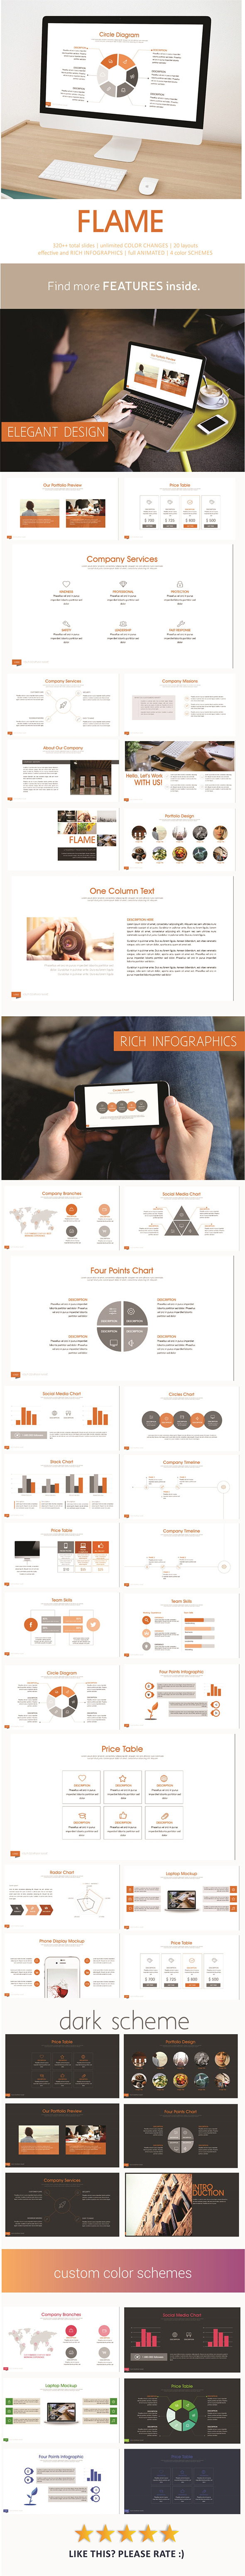 Flame PowerPoint Template - Business PowerPoint Templates